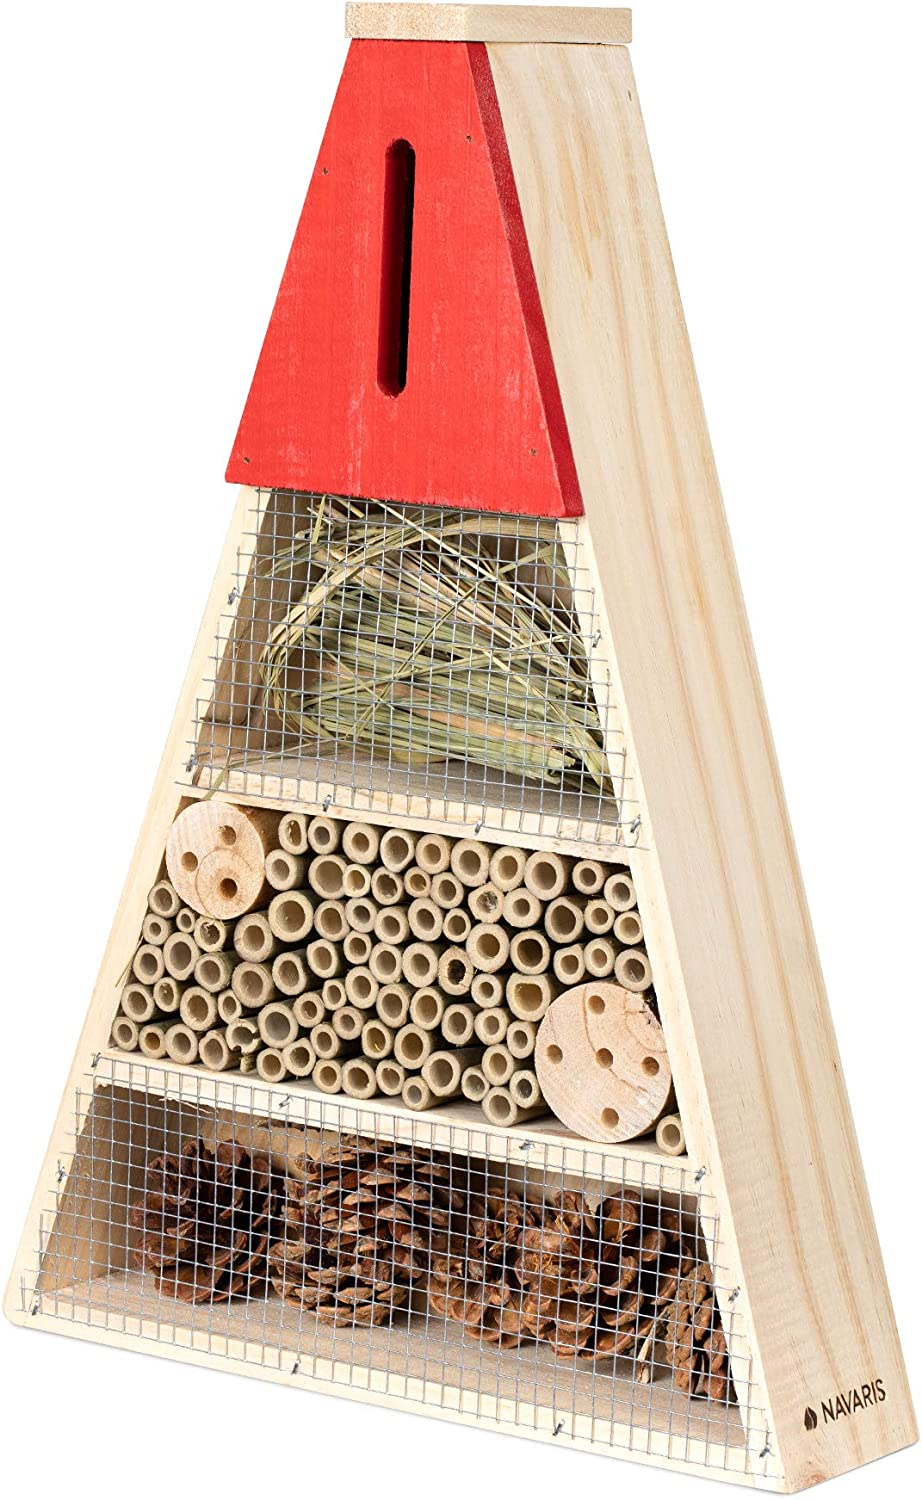 Navaris Wood Triangle Insect 67% OFF of fixed price Hotel - 11